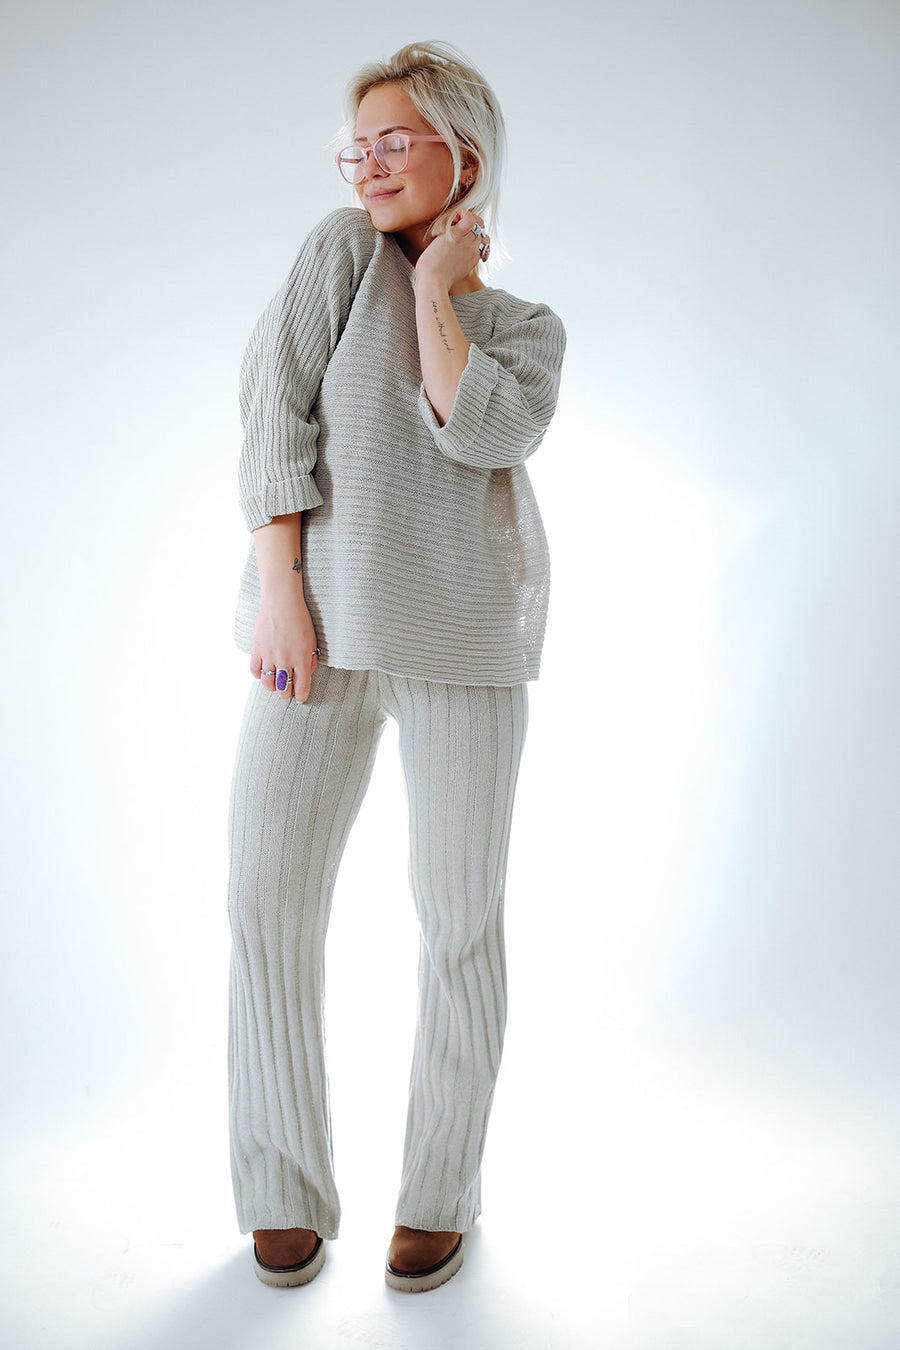 CORNELIA STREET KNIT SET (TOP)